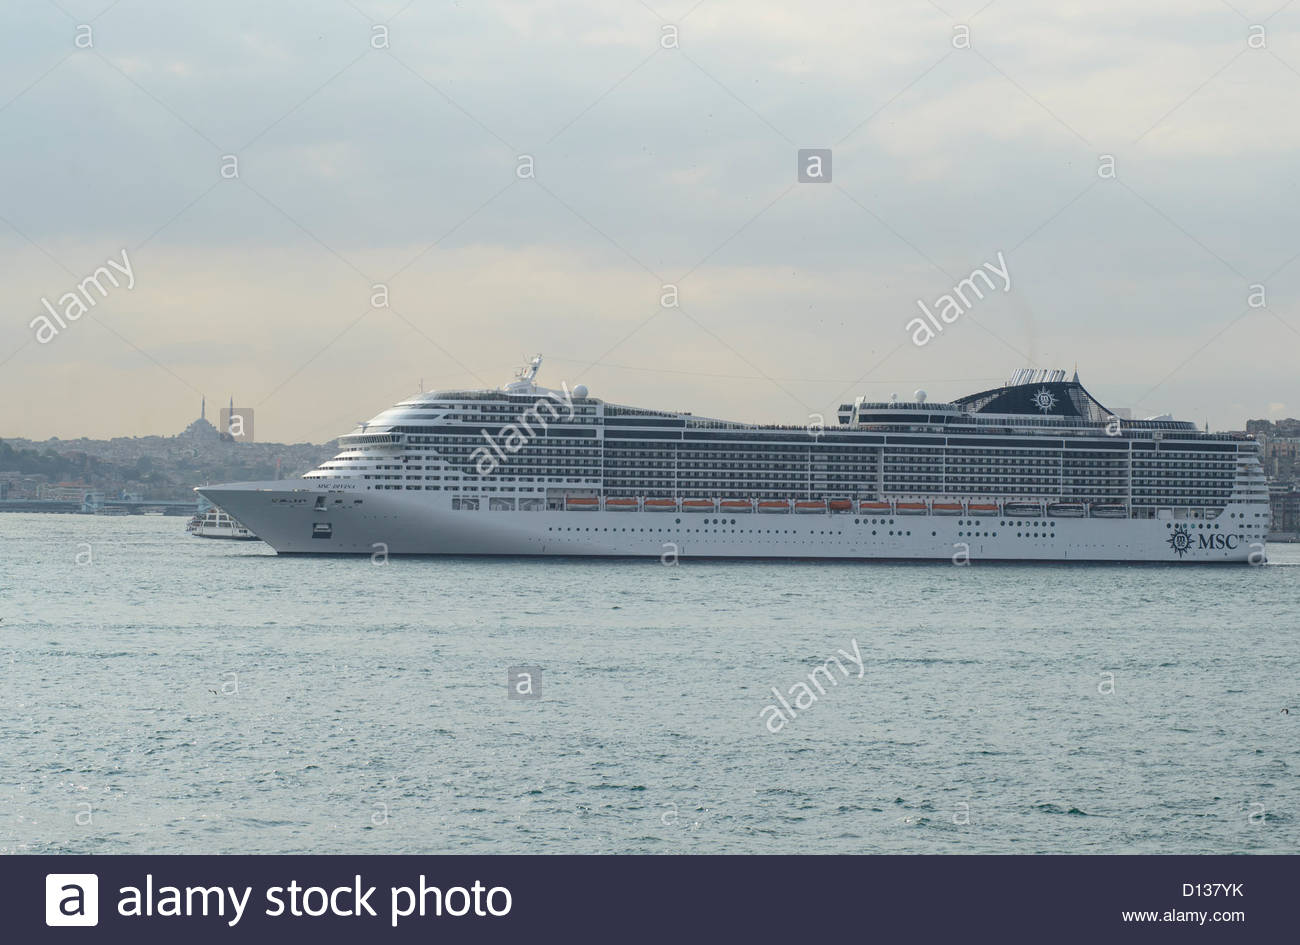 Cruise liner on the Bosphorus in Istanbul - Stock Image